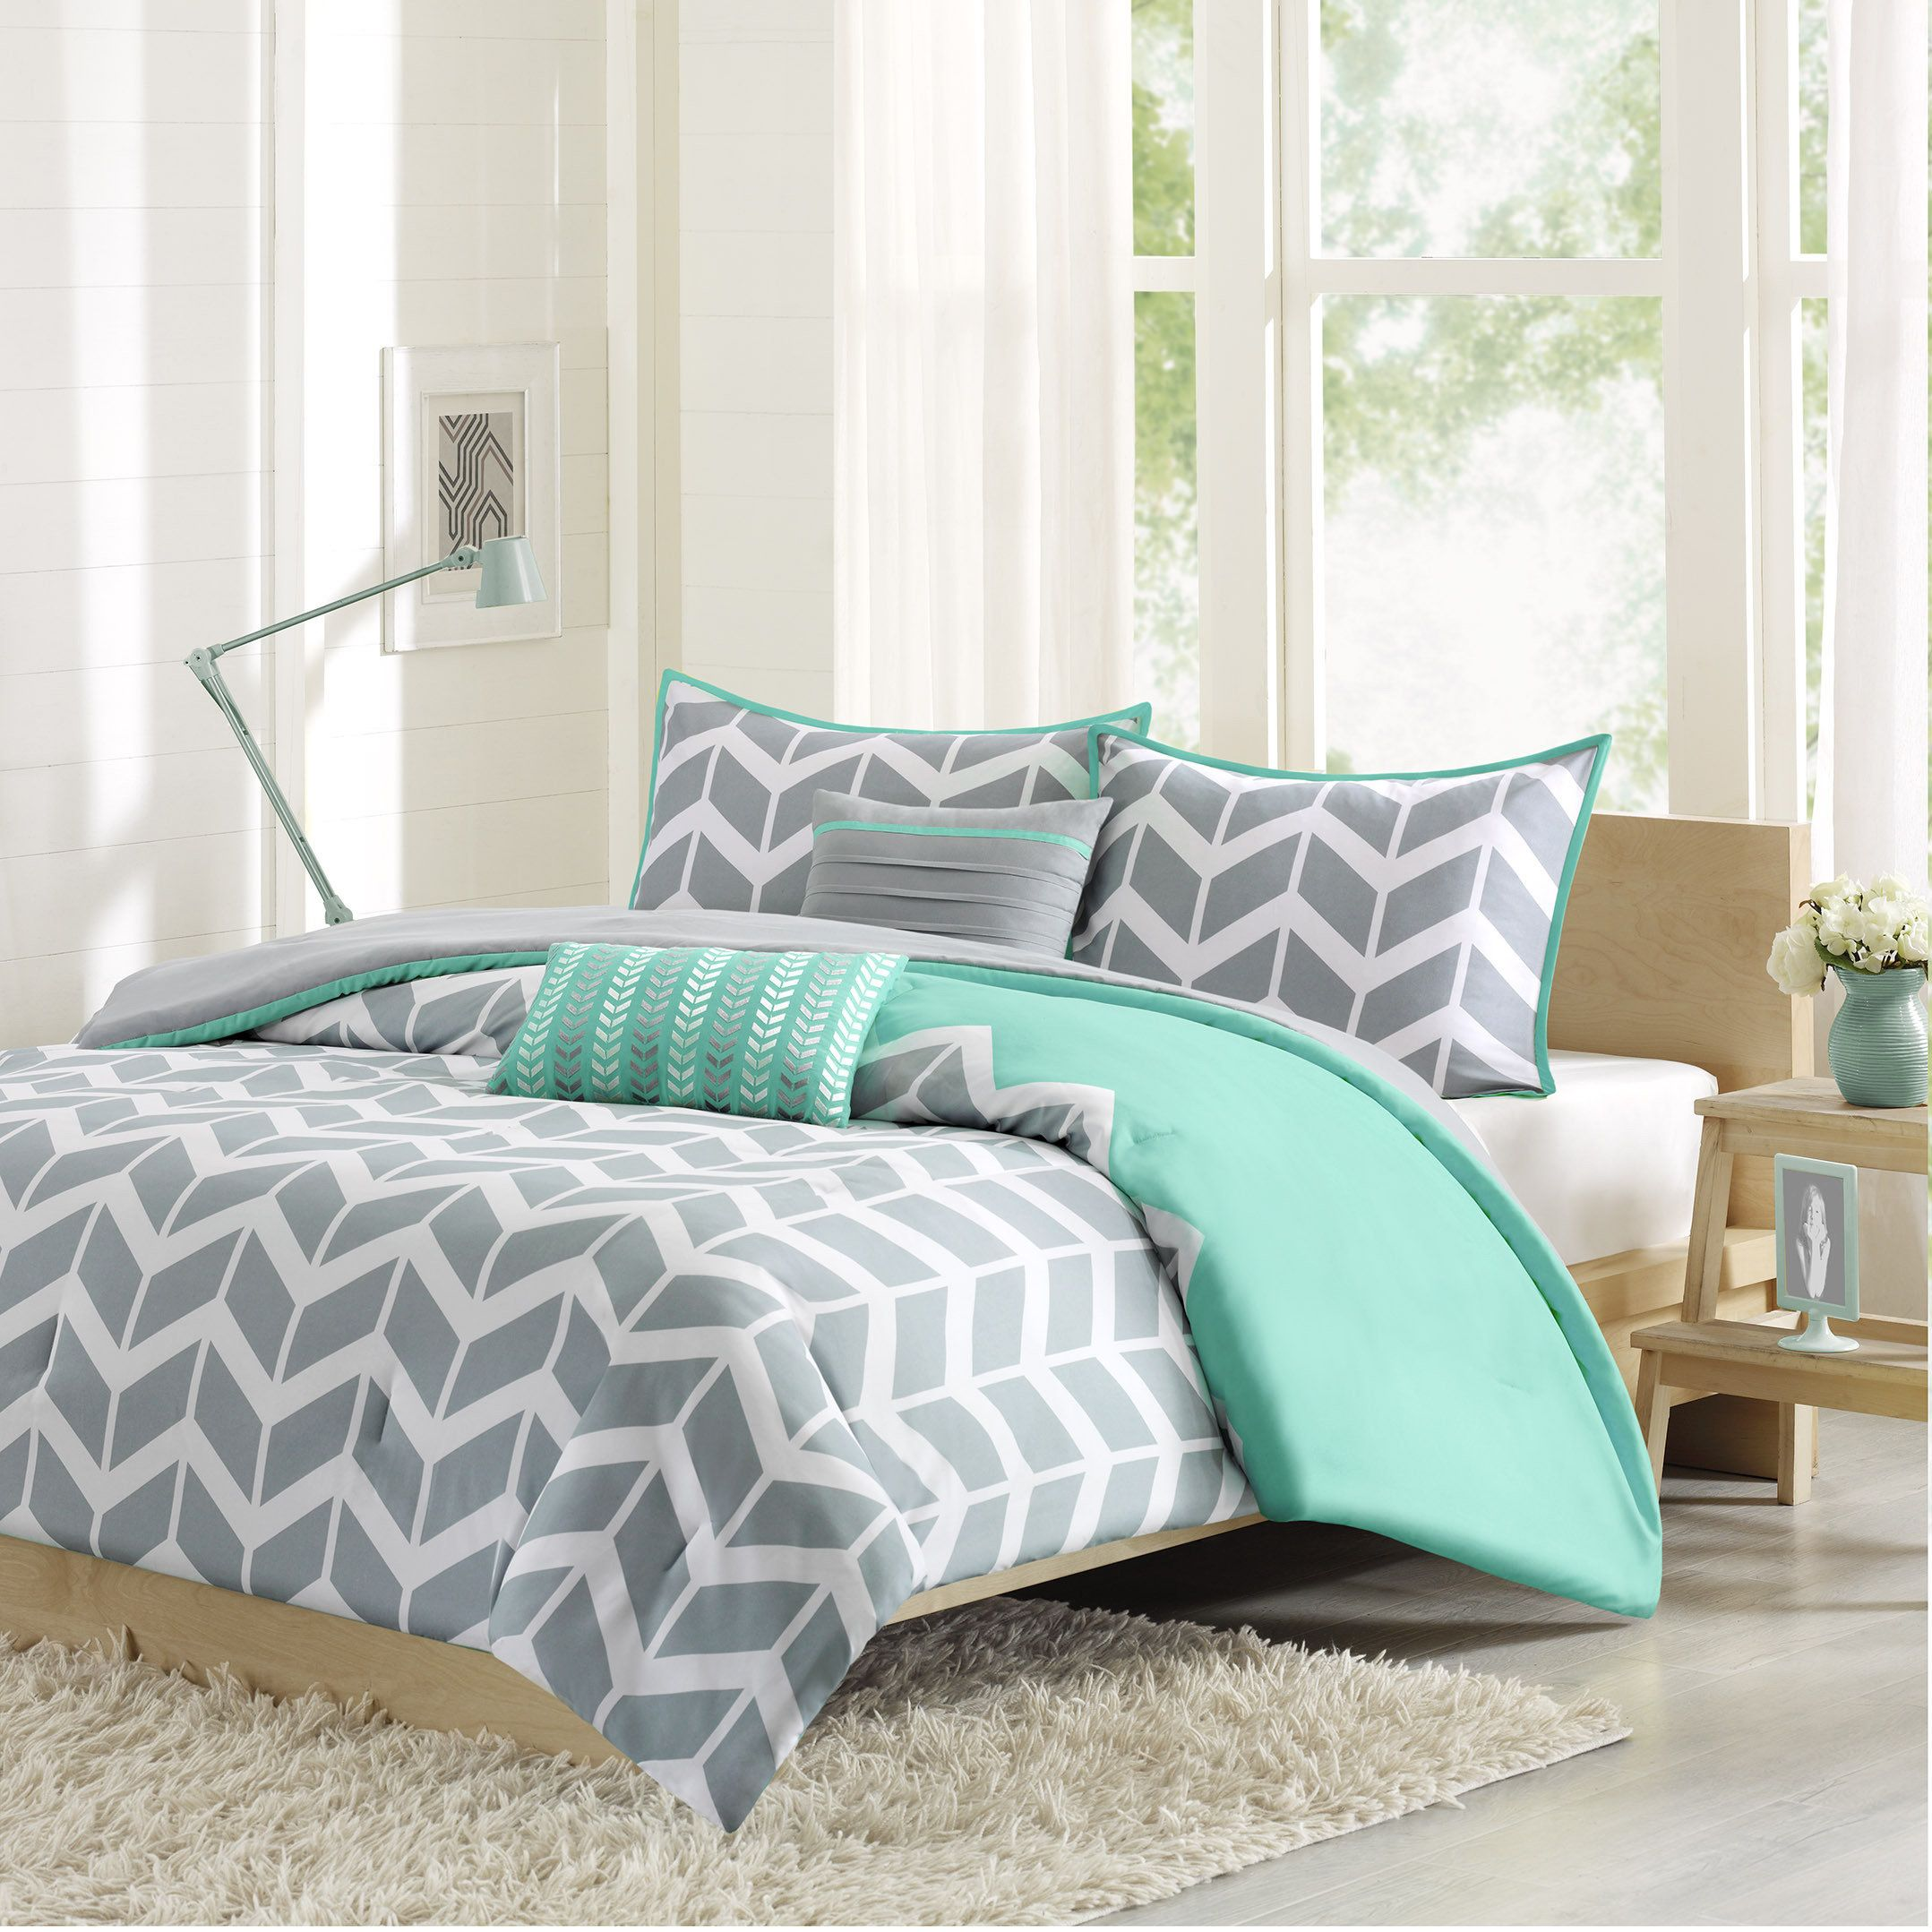 Intelligent Design Laila 5 piece Full Queen Size forter Set in